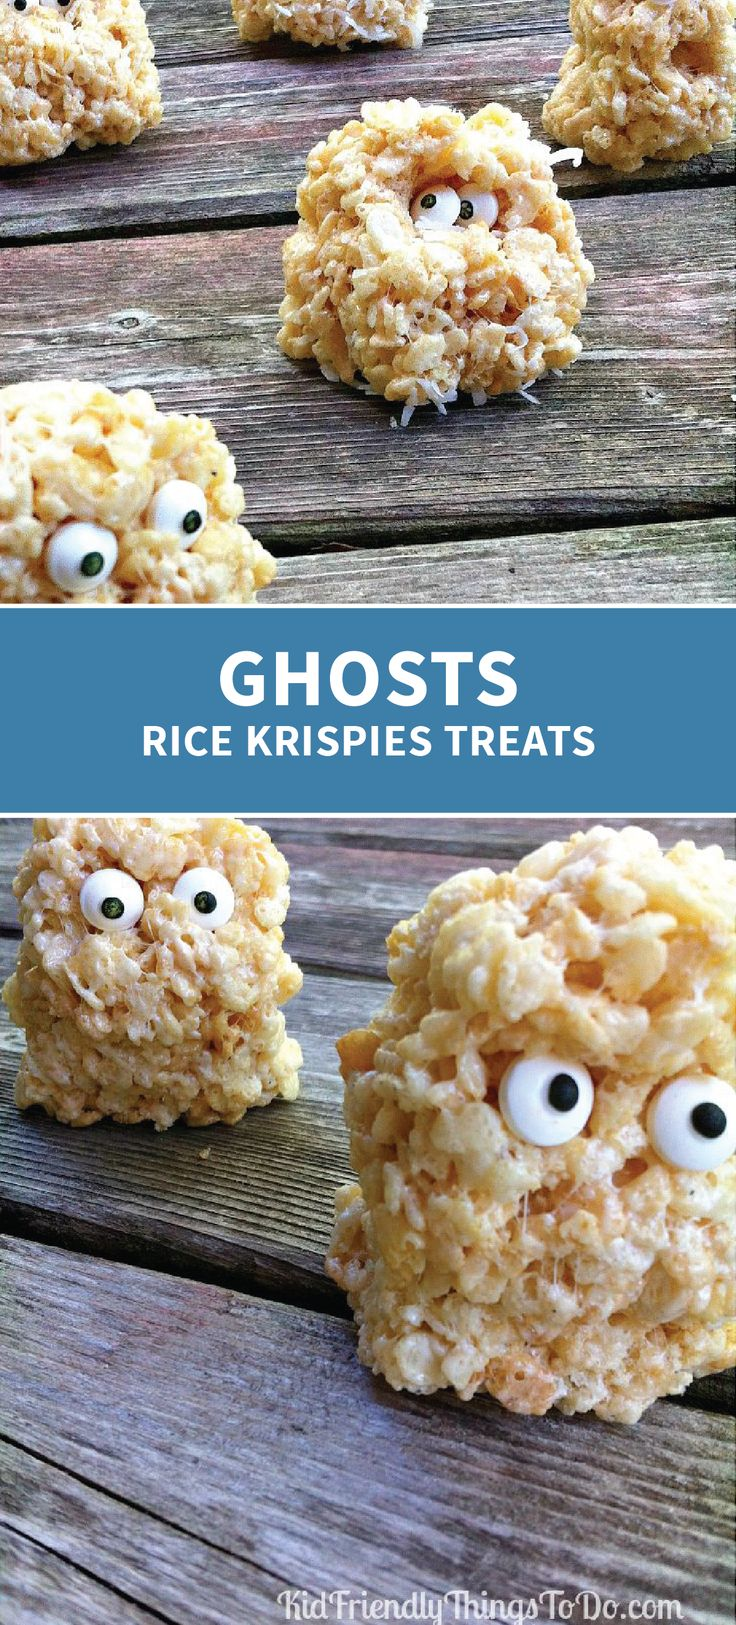 You should be anything but spooked to make these Ghosts Rice Krispies Treats® for your Halloween party. With simple decorations and an easy prep time, you can your kids can make these unique desserts in no-time.